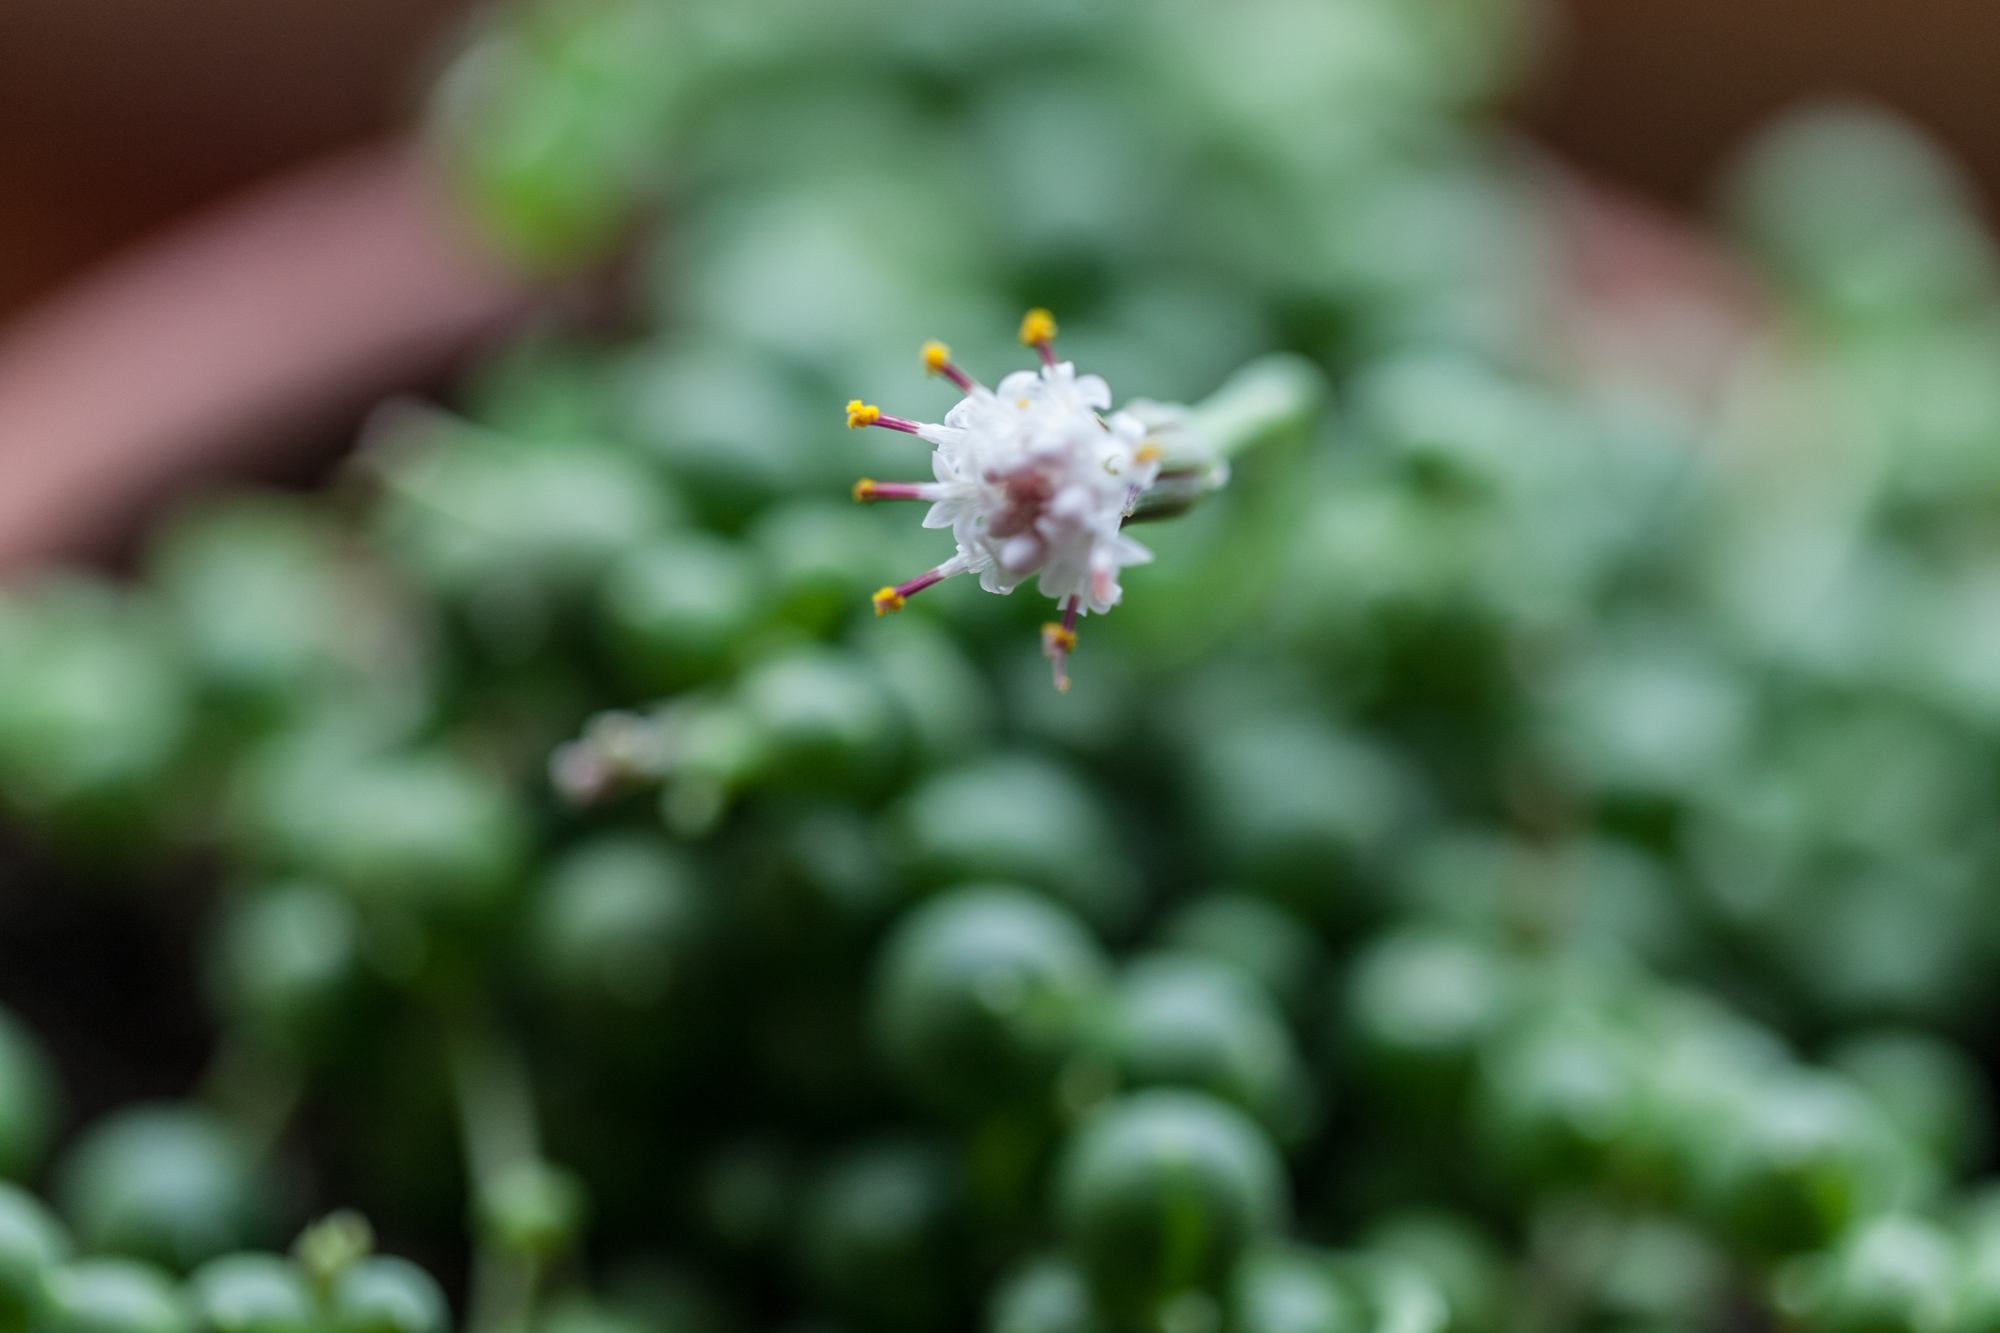 String-of-pearls ( Senecio rowleyanus ) is a succulent within the Aster family, which is easy to see after you see its small but showy aster-like flowers.